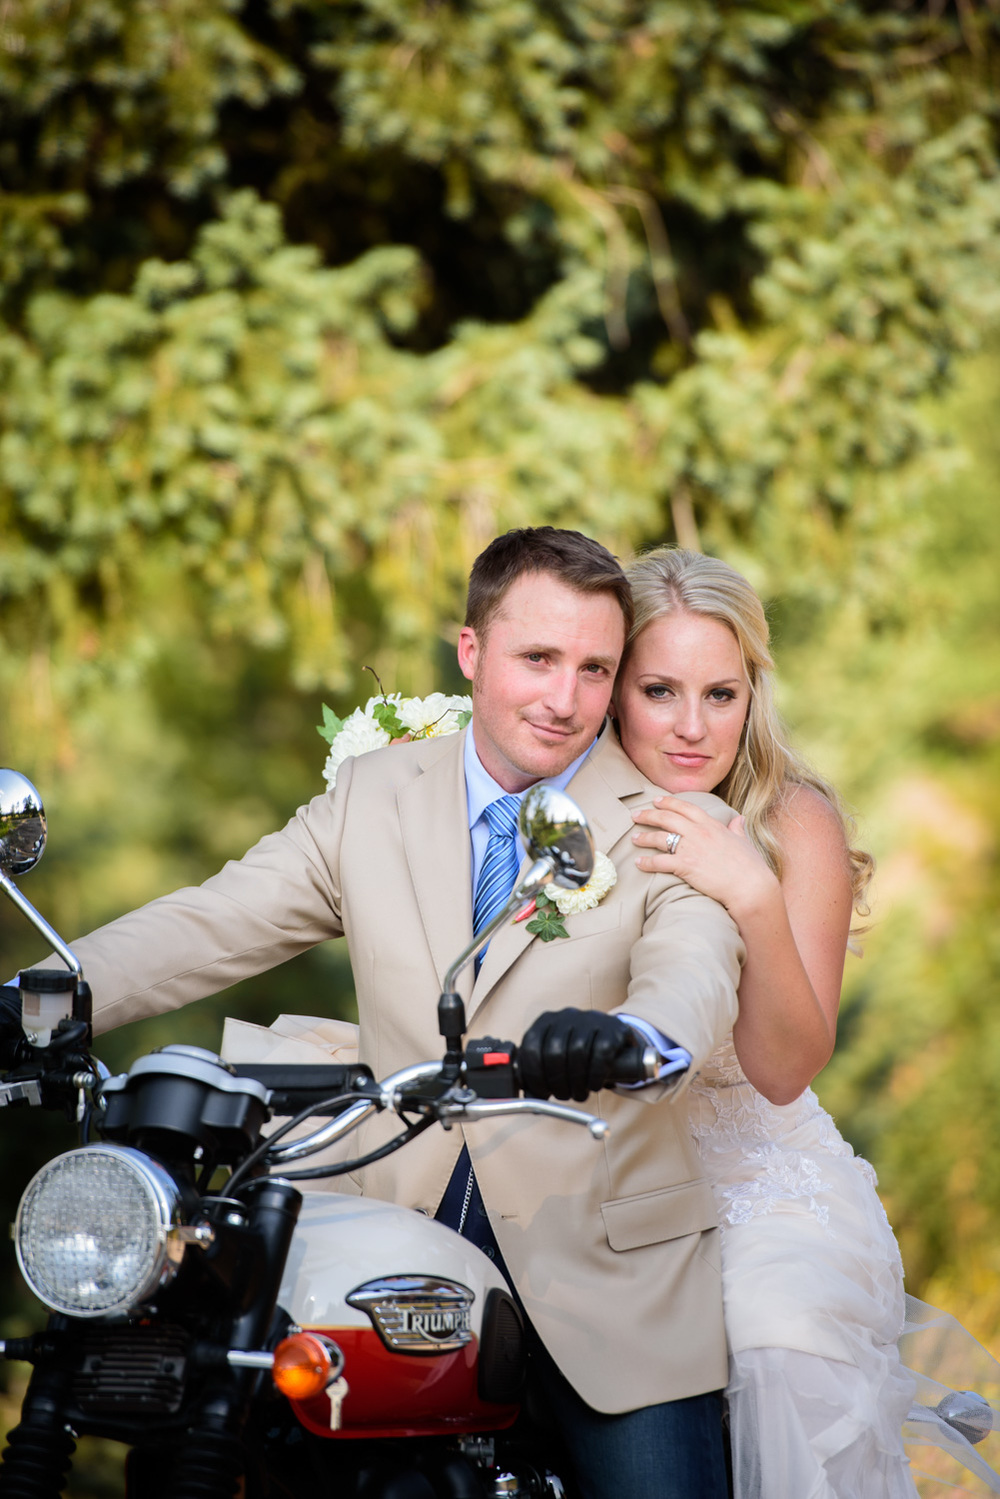 Bride and Groom pose on Motorcycle in Evergreen